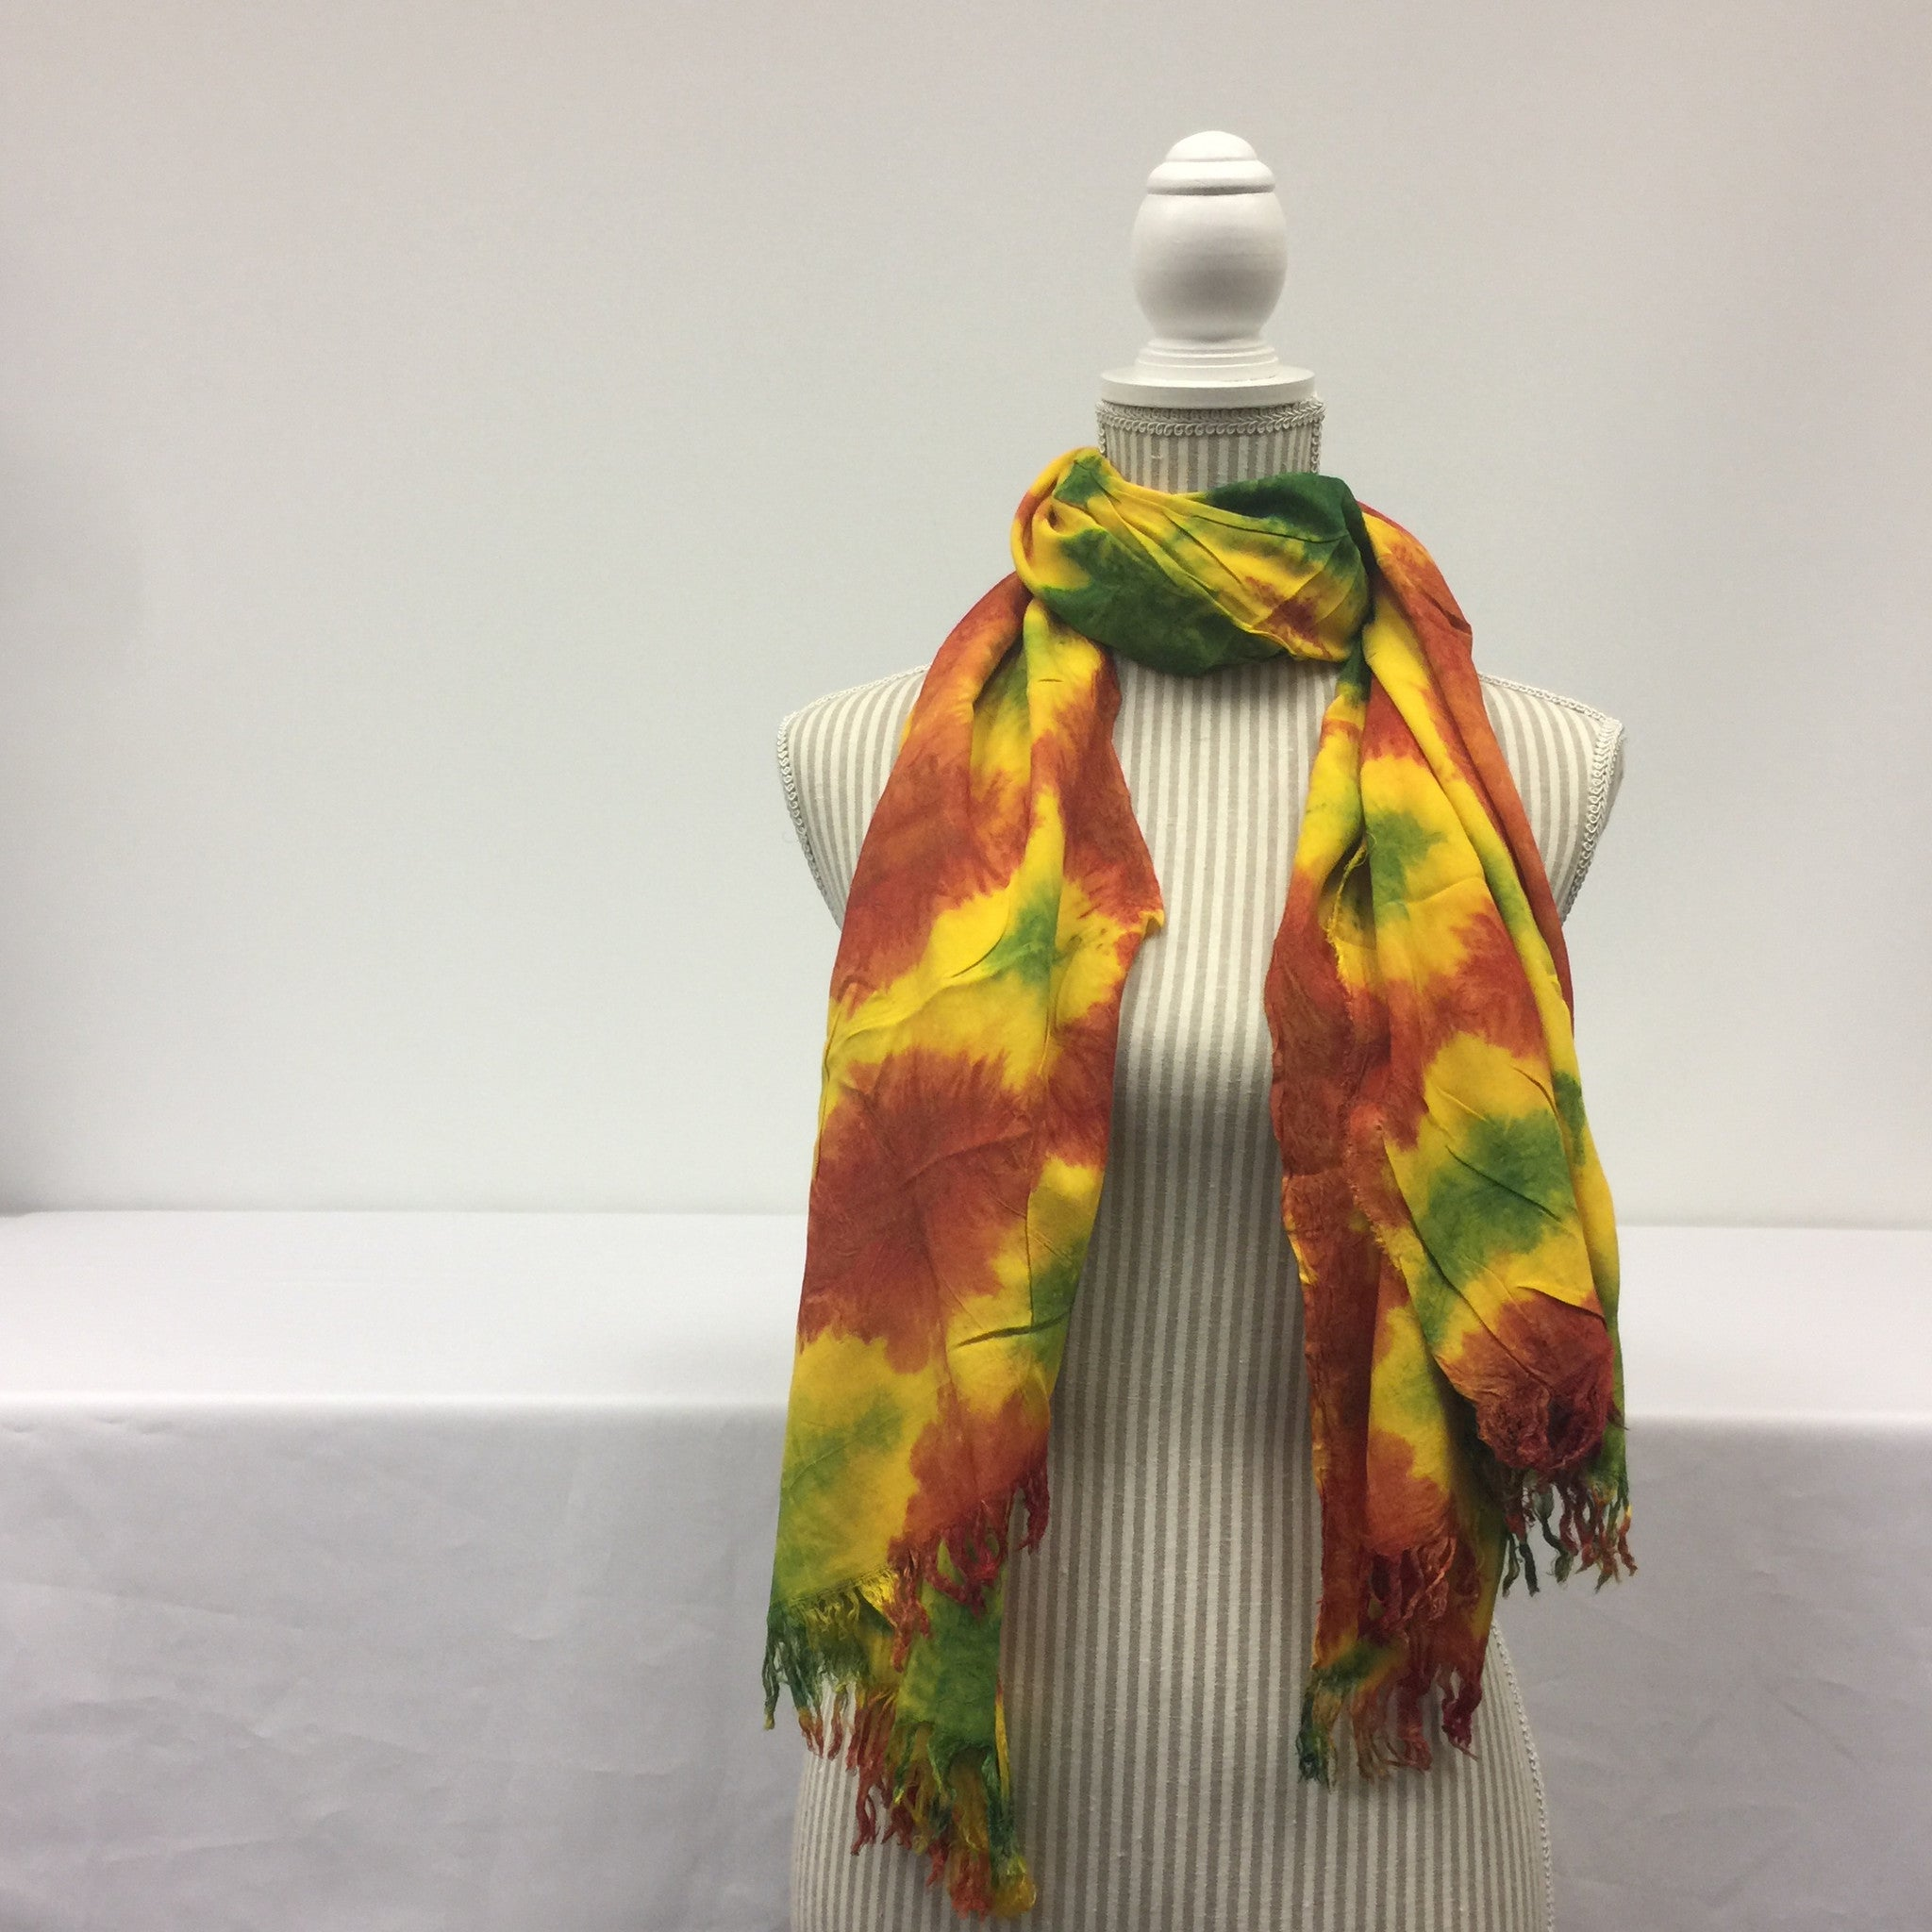 Yellow Scarf (Orange and Green Patterned)